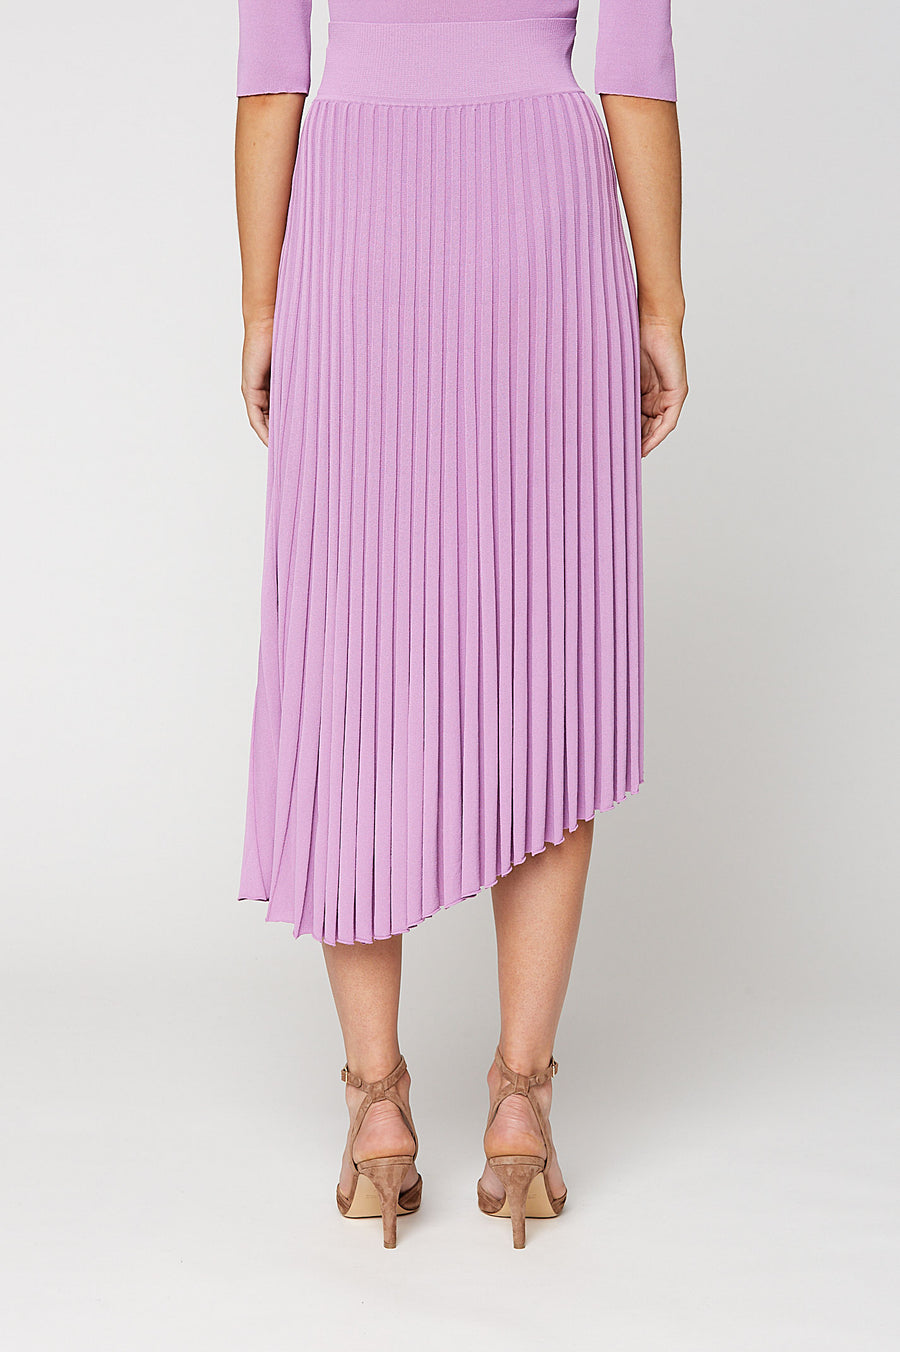 PLEATED RIB WRAP SKIRT 16, MAUVE color